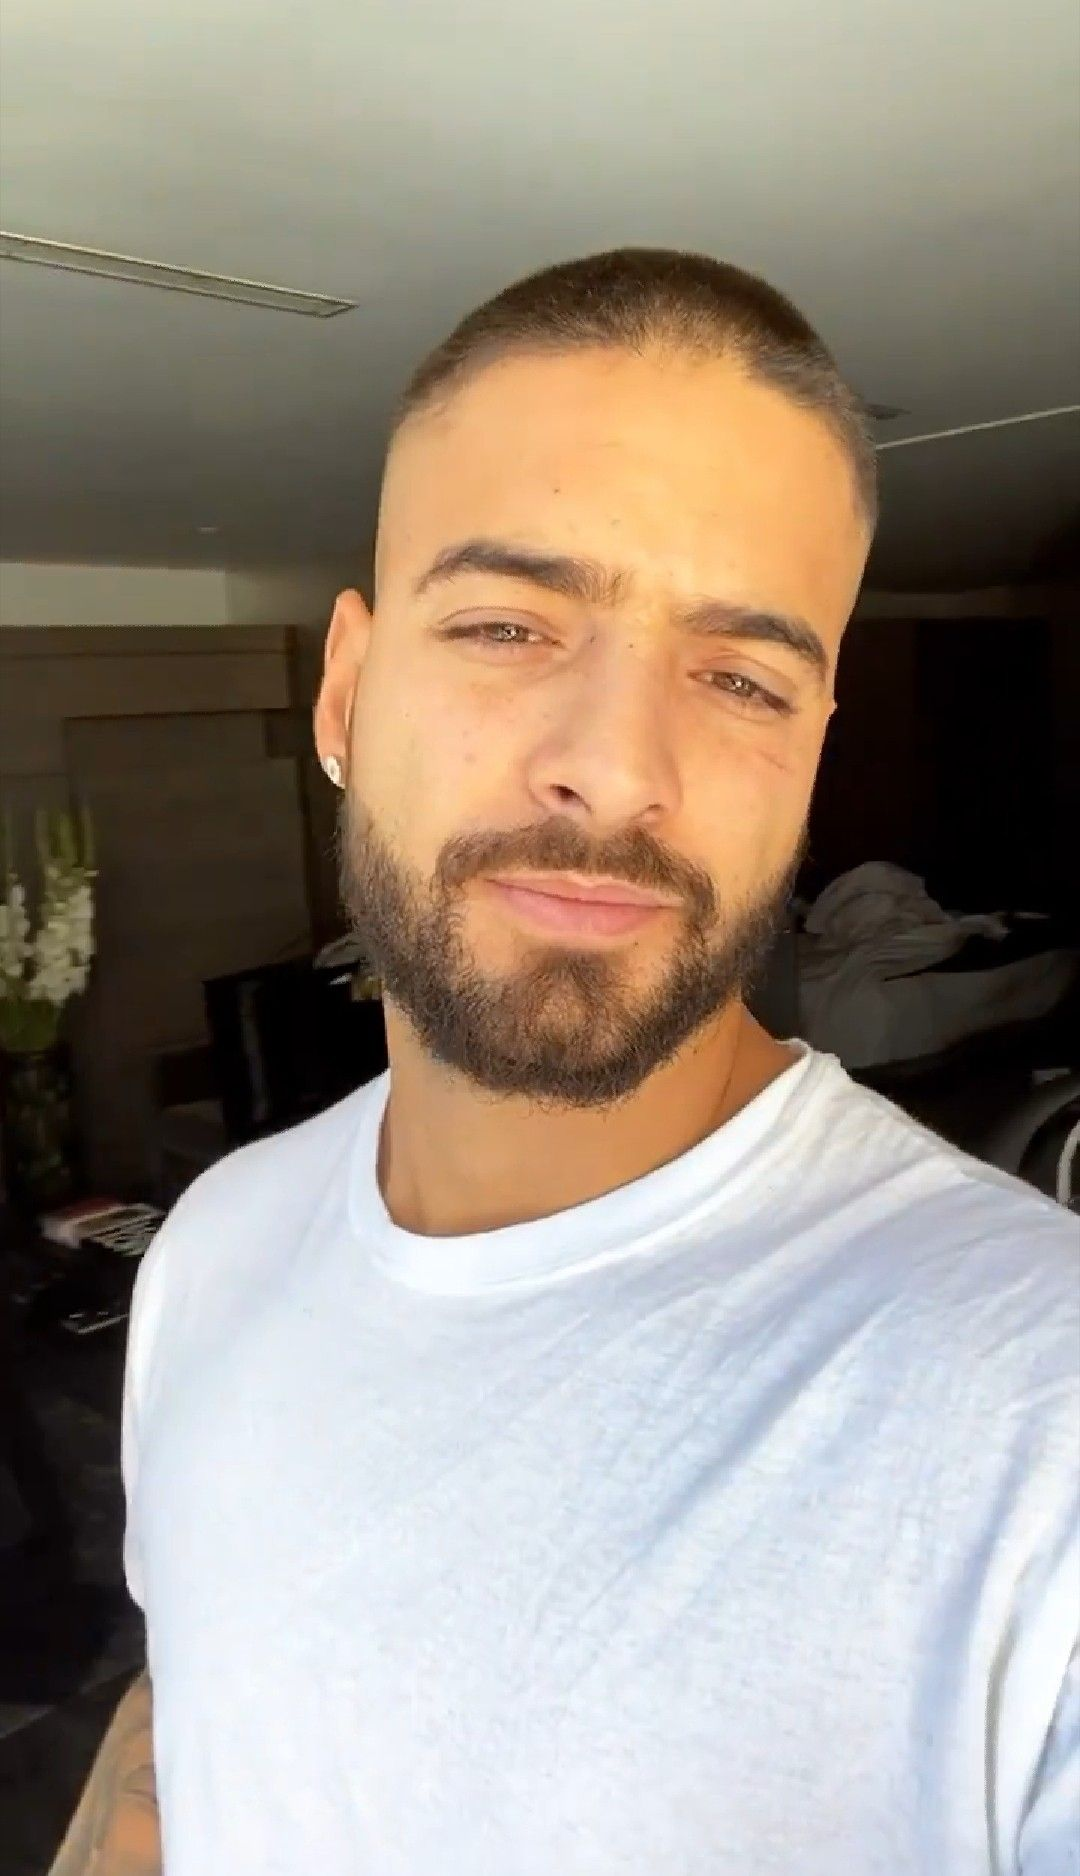 Handsome Haircuts For Balding Men Beard Styles For Men Mens Hairstyles Short